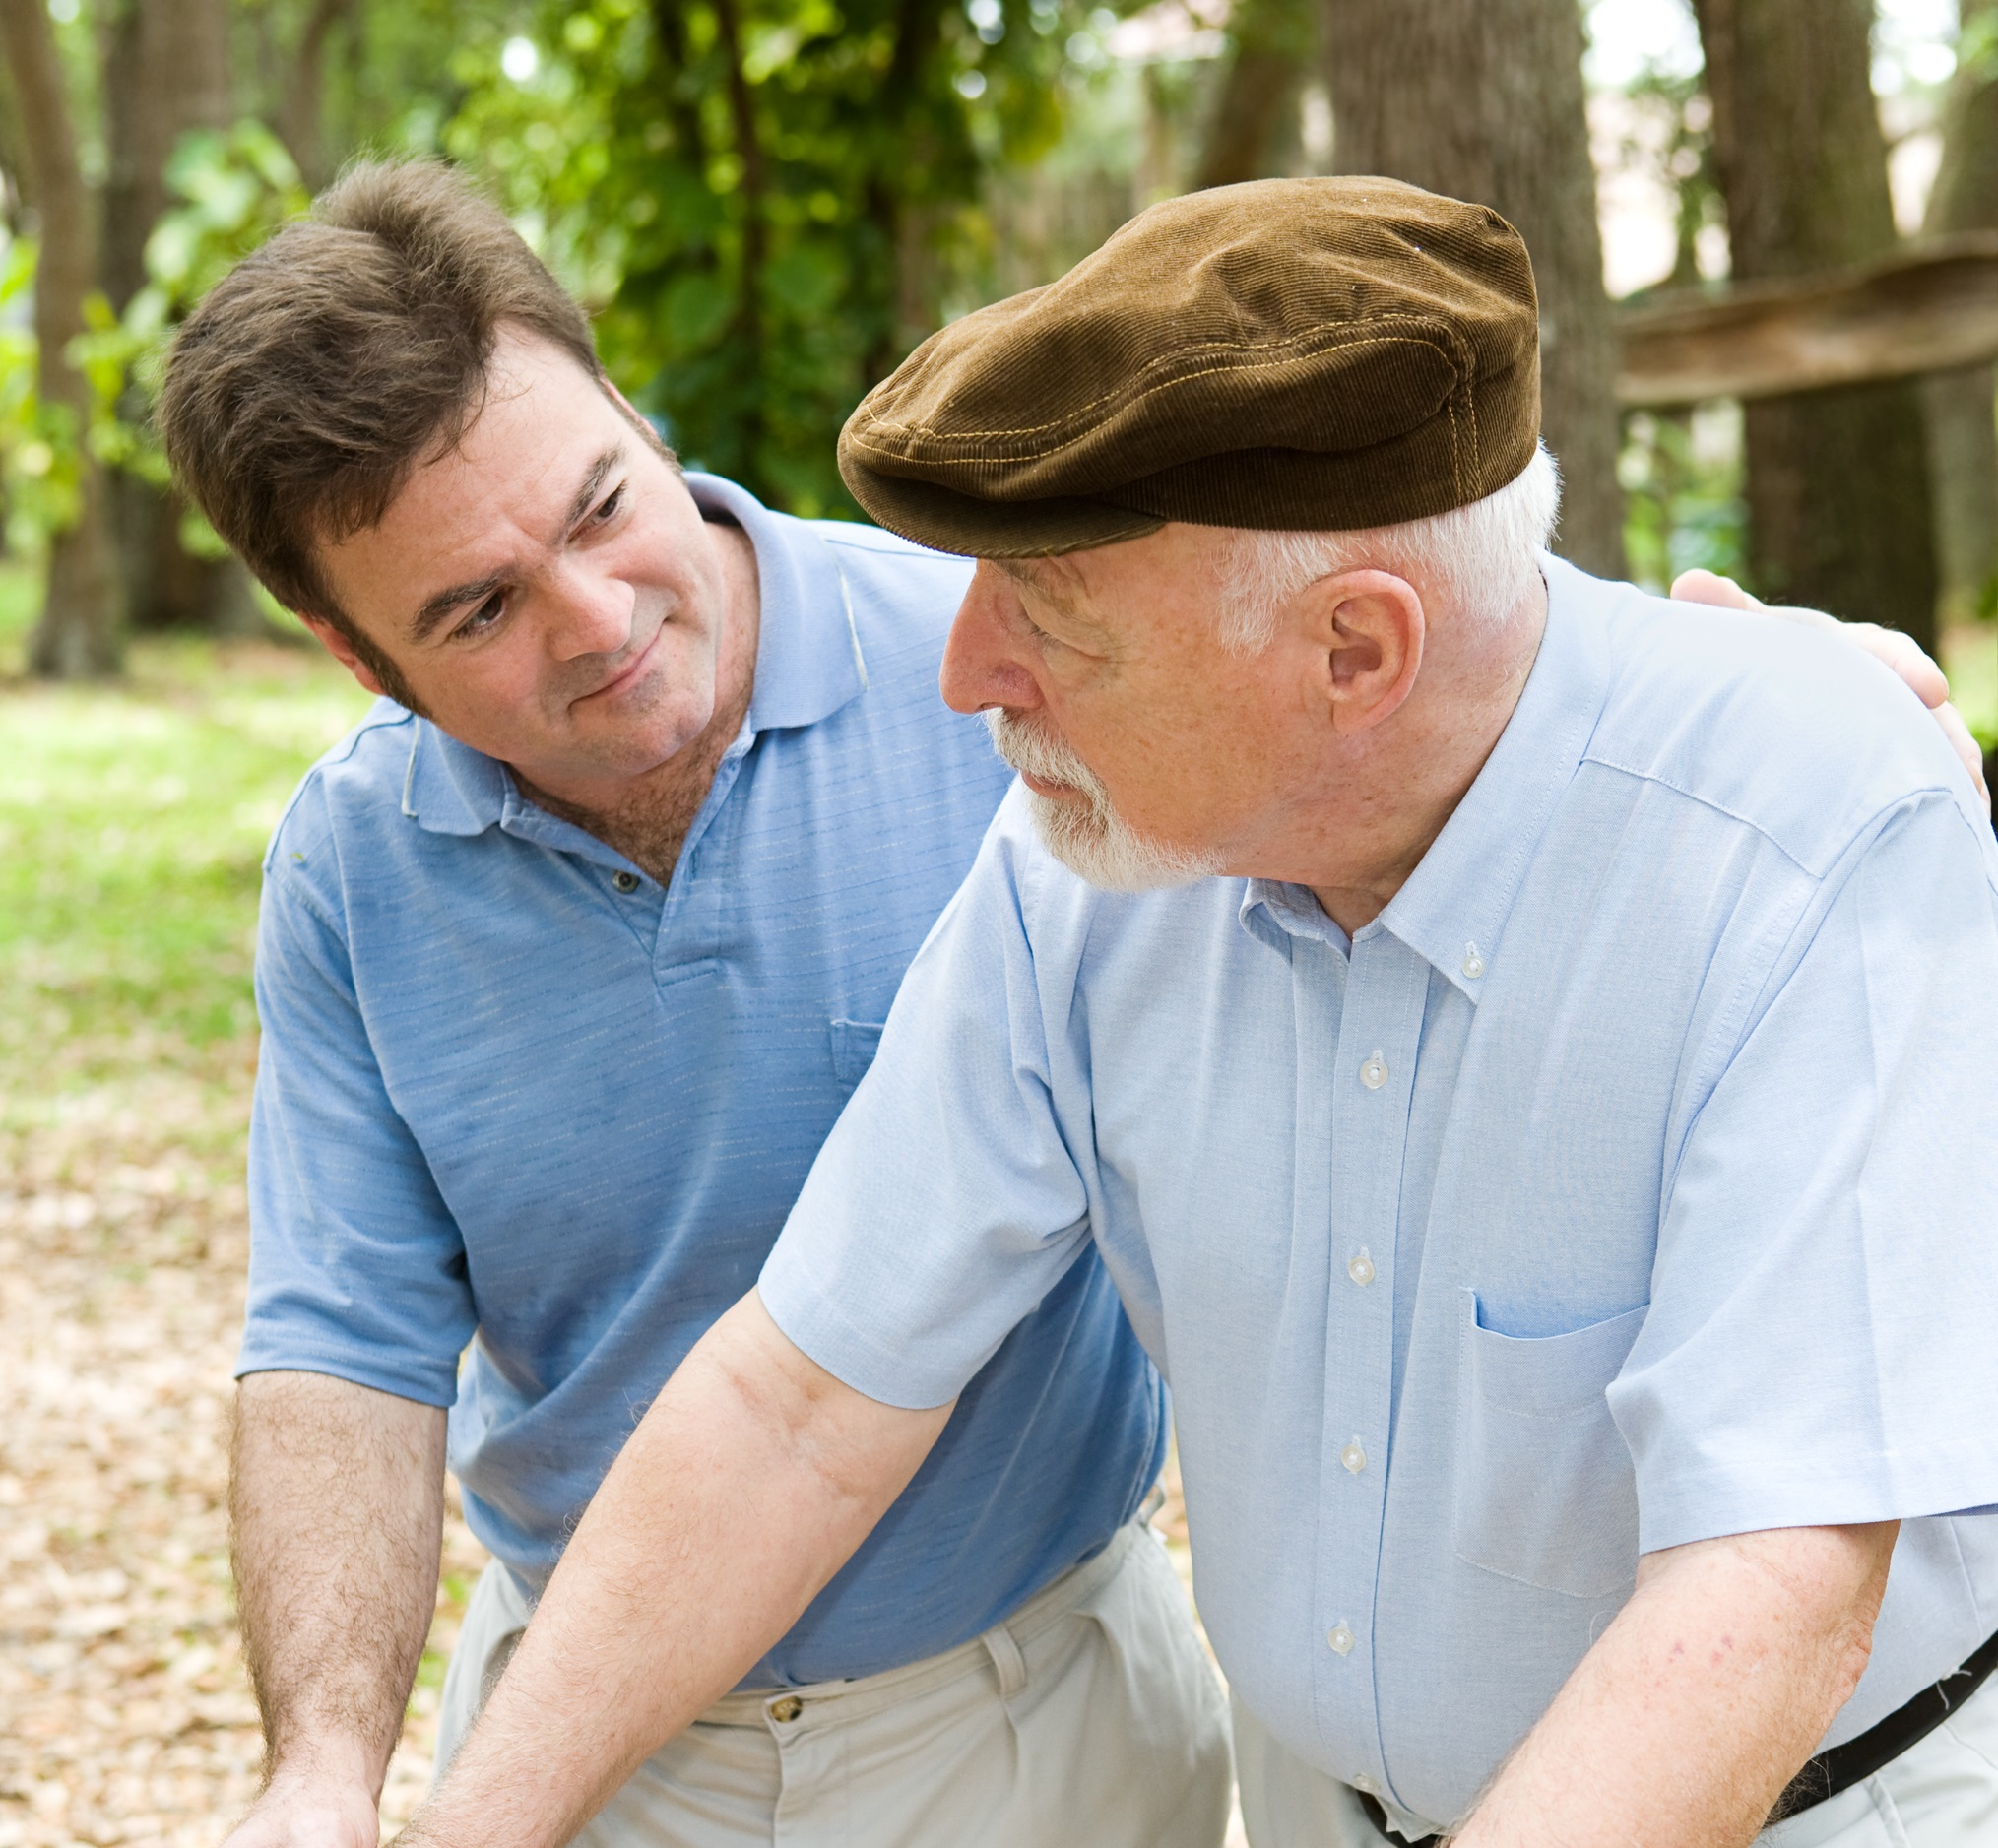 New research presents best practice end of life care models for dementia patients